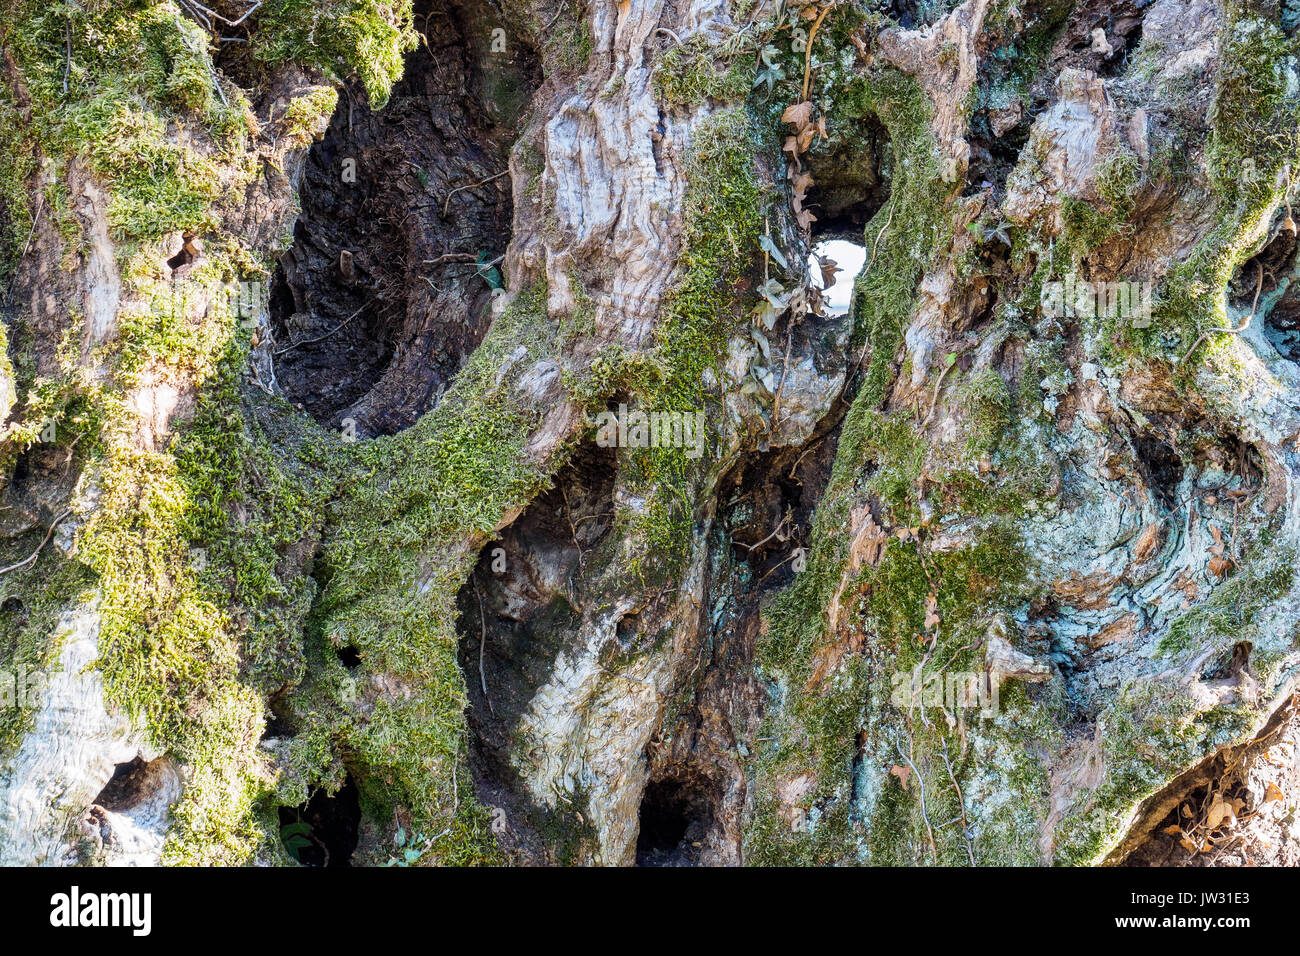 Secular olive tree trunk with musk in the region of Umbria (Italy). - Stock Image